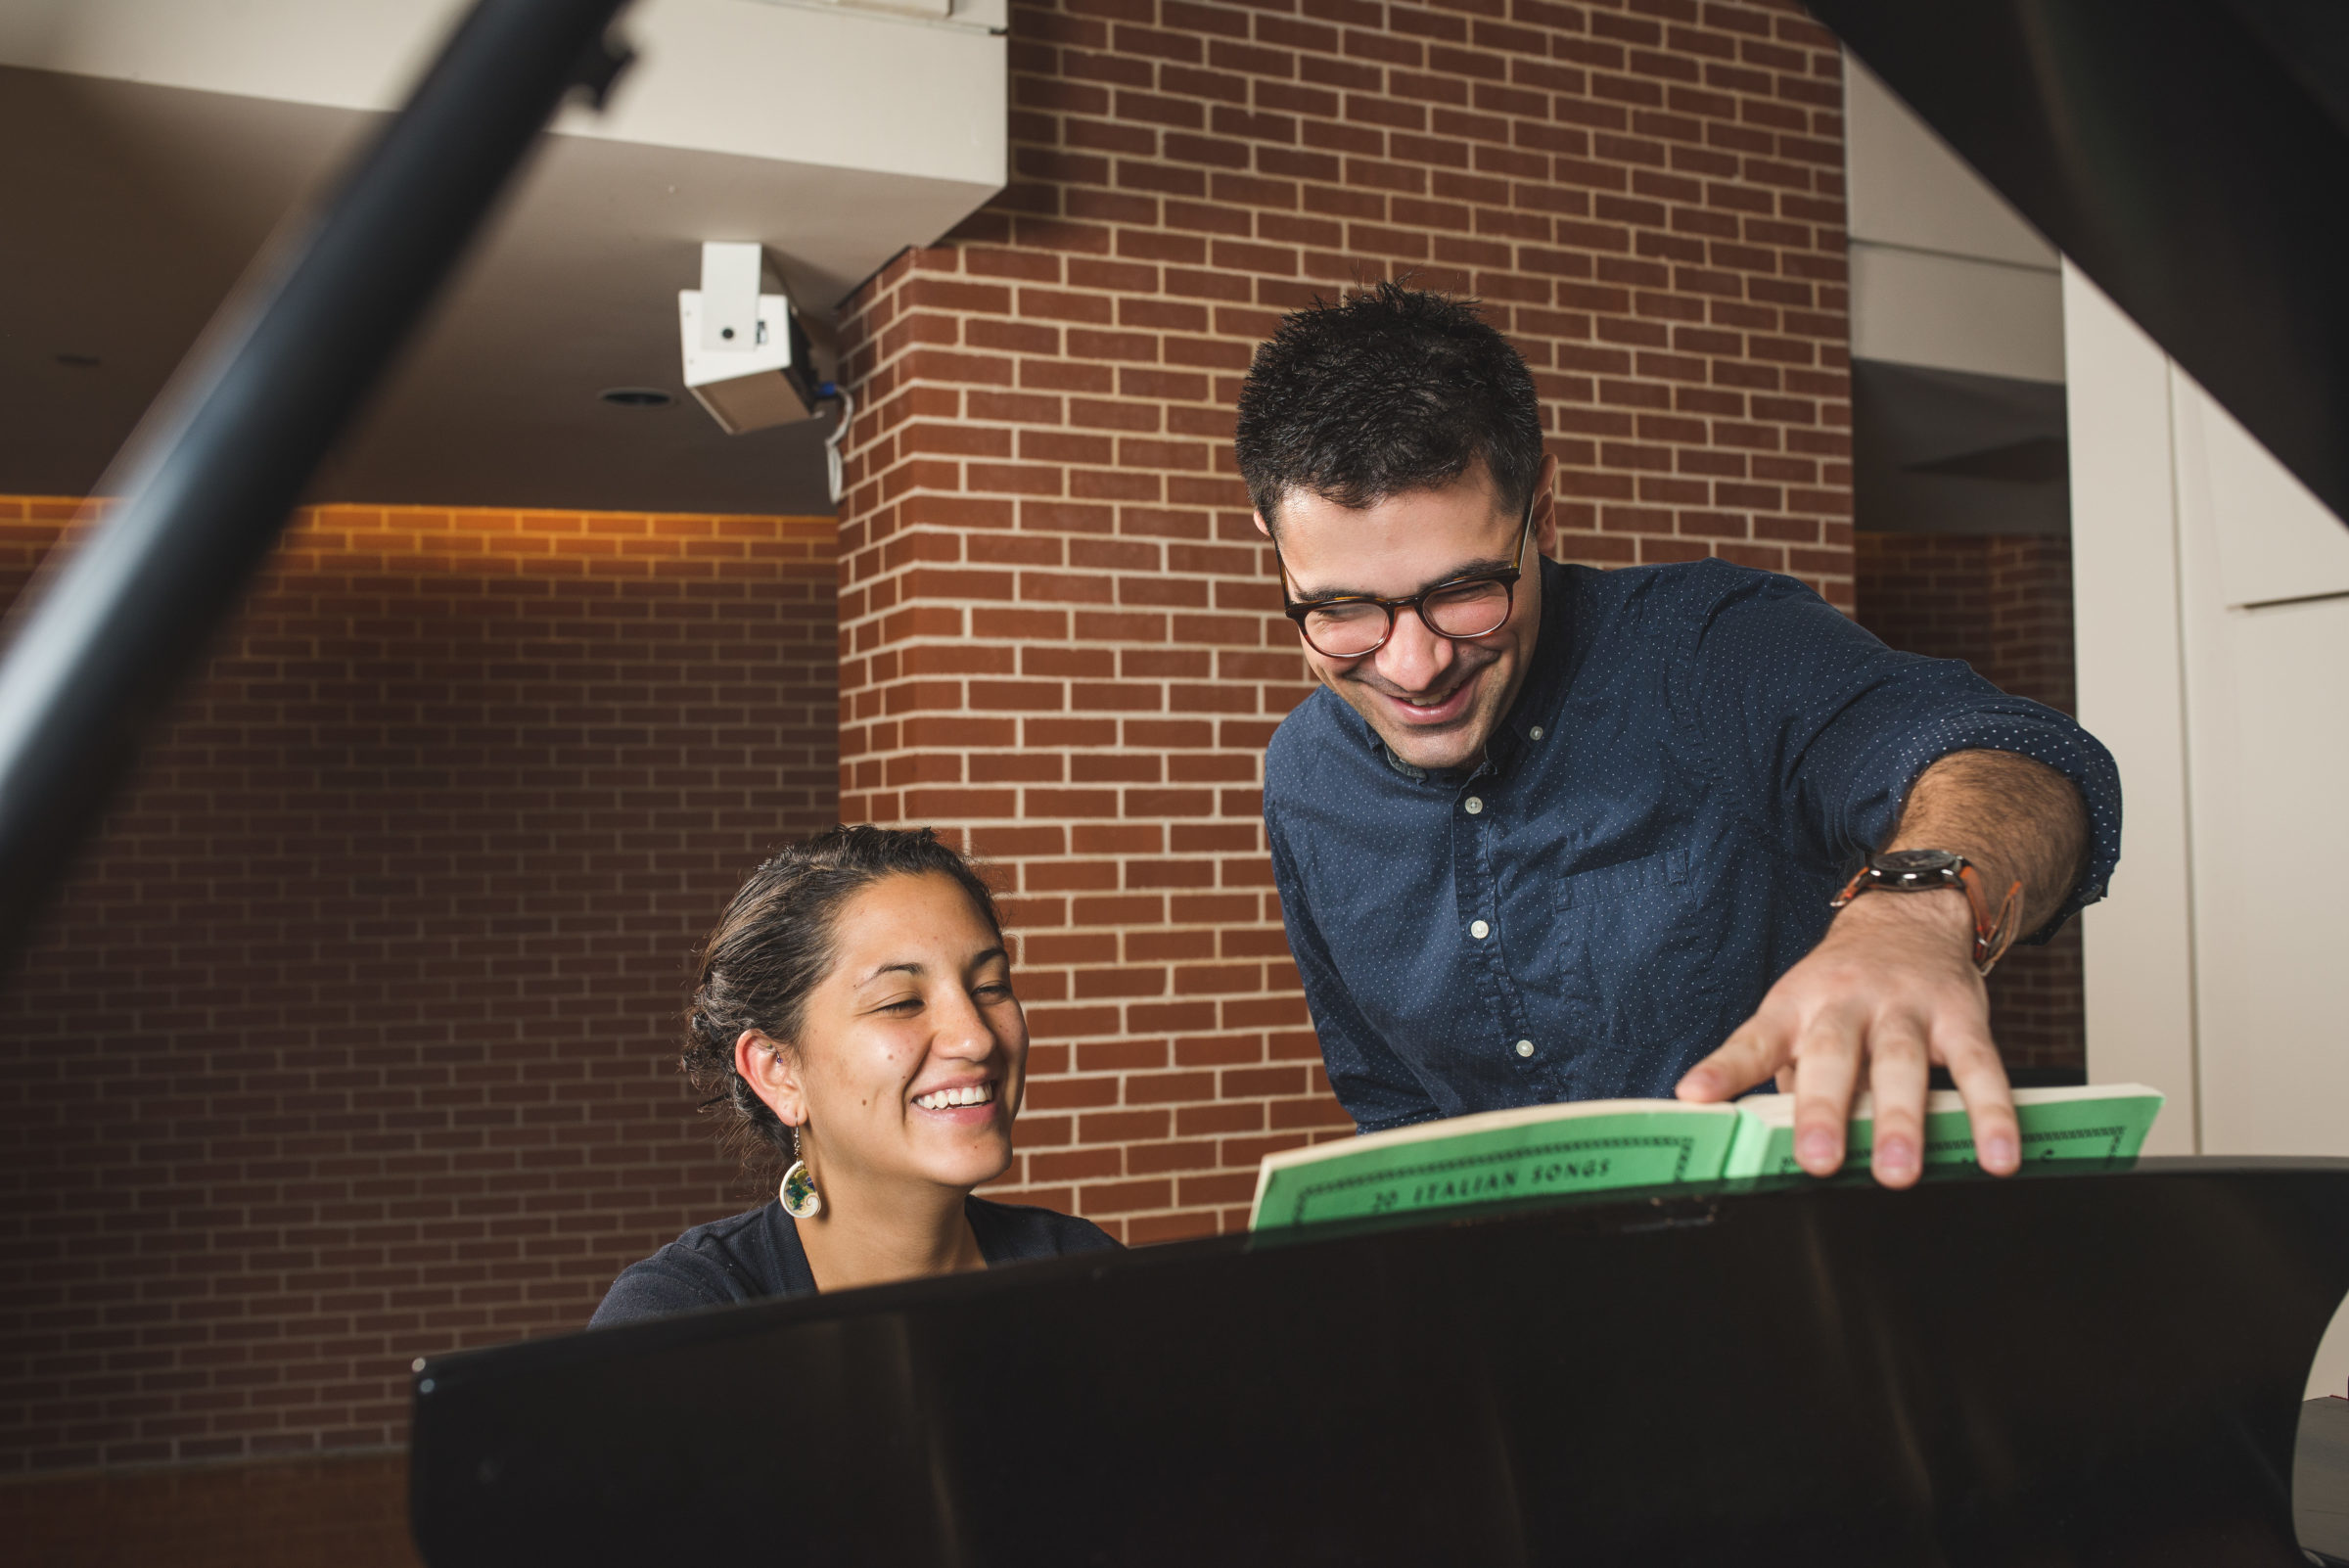 Master of Music in Collaborative Piano Program Requirements featured image background